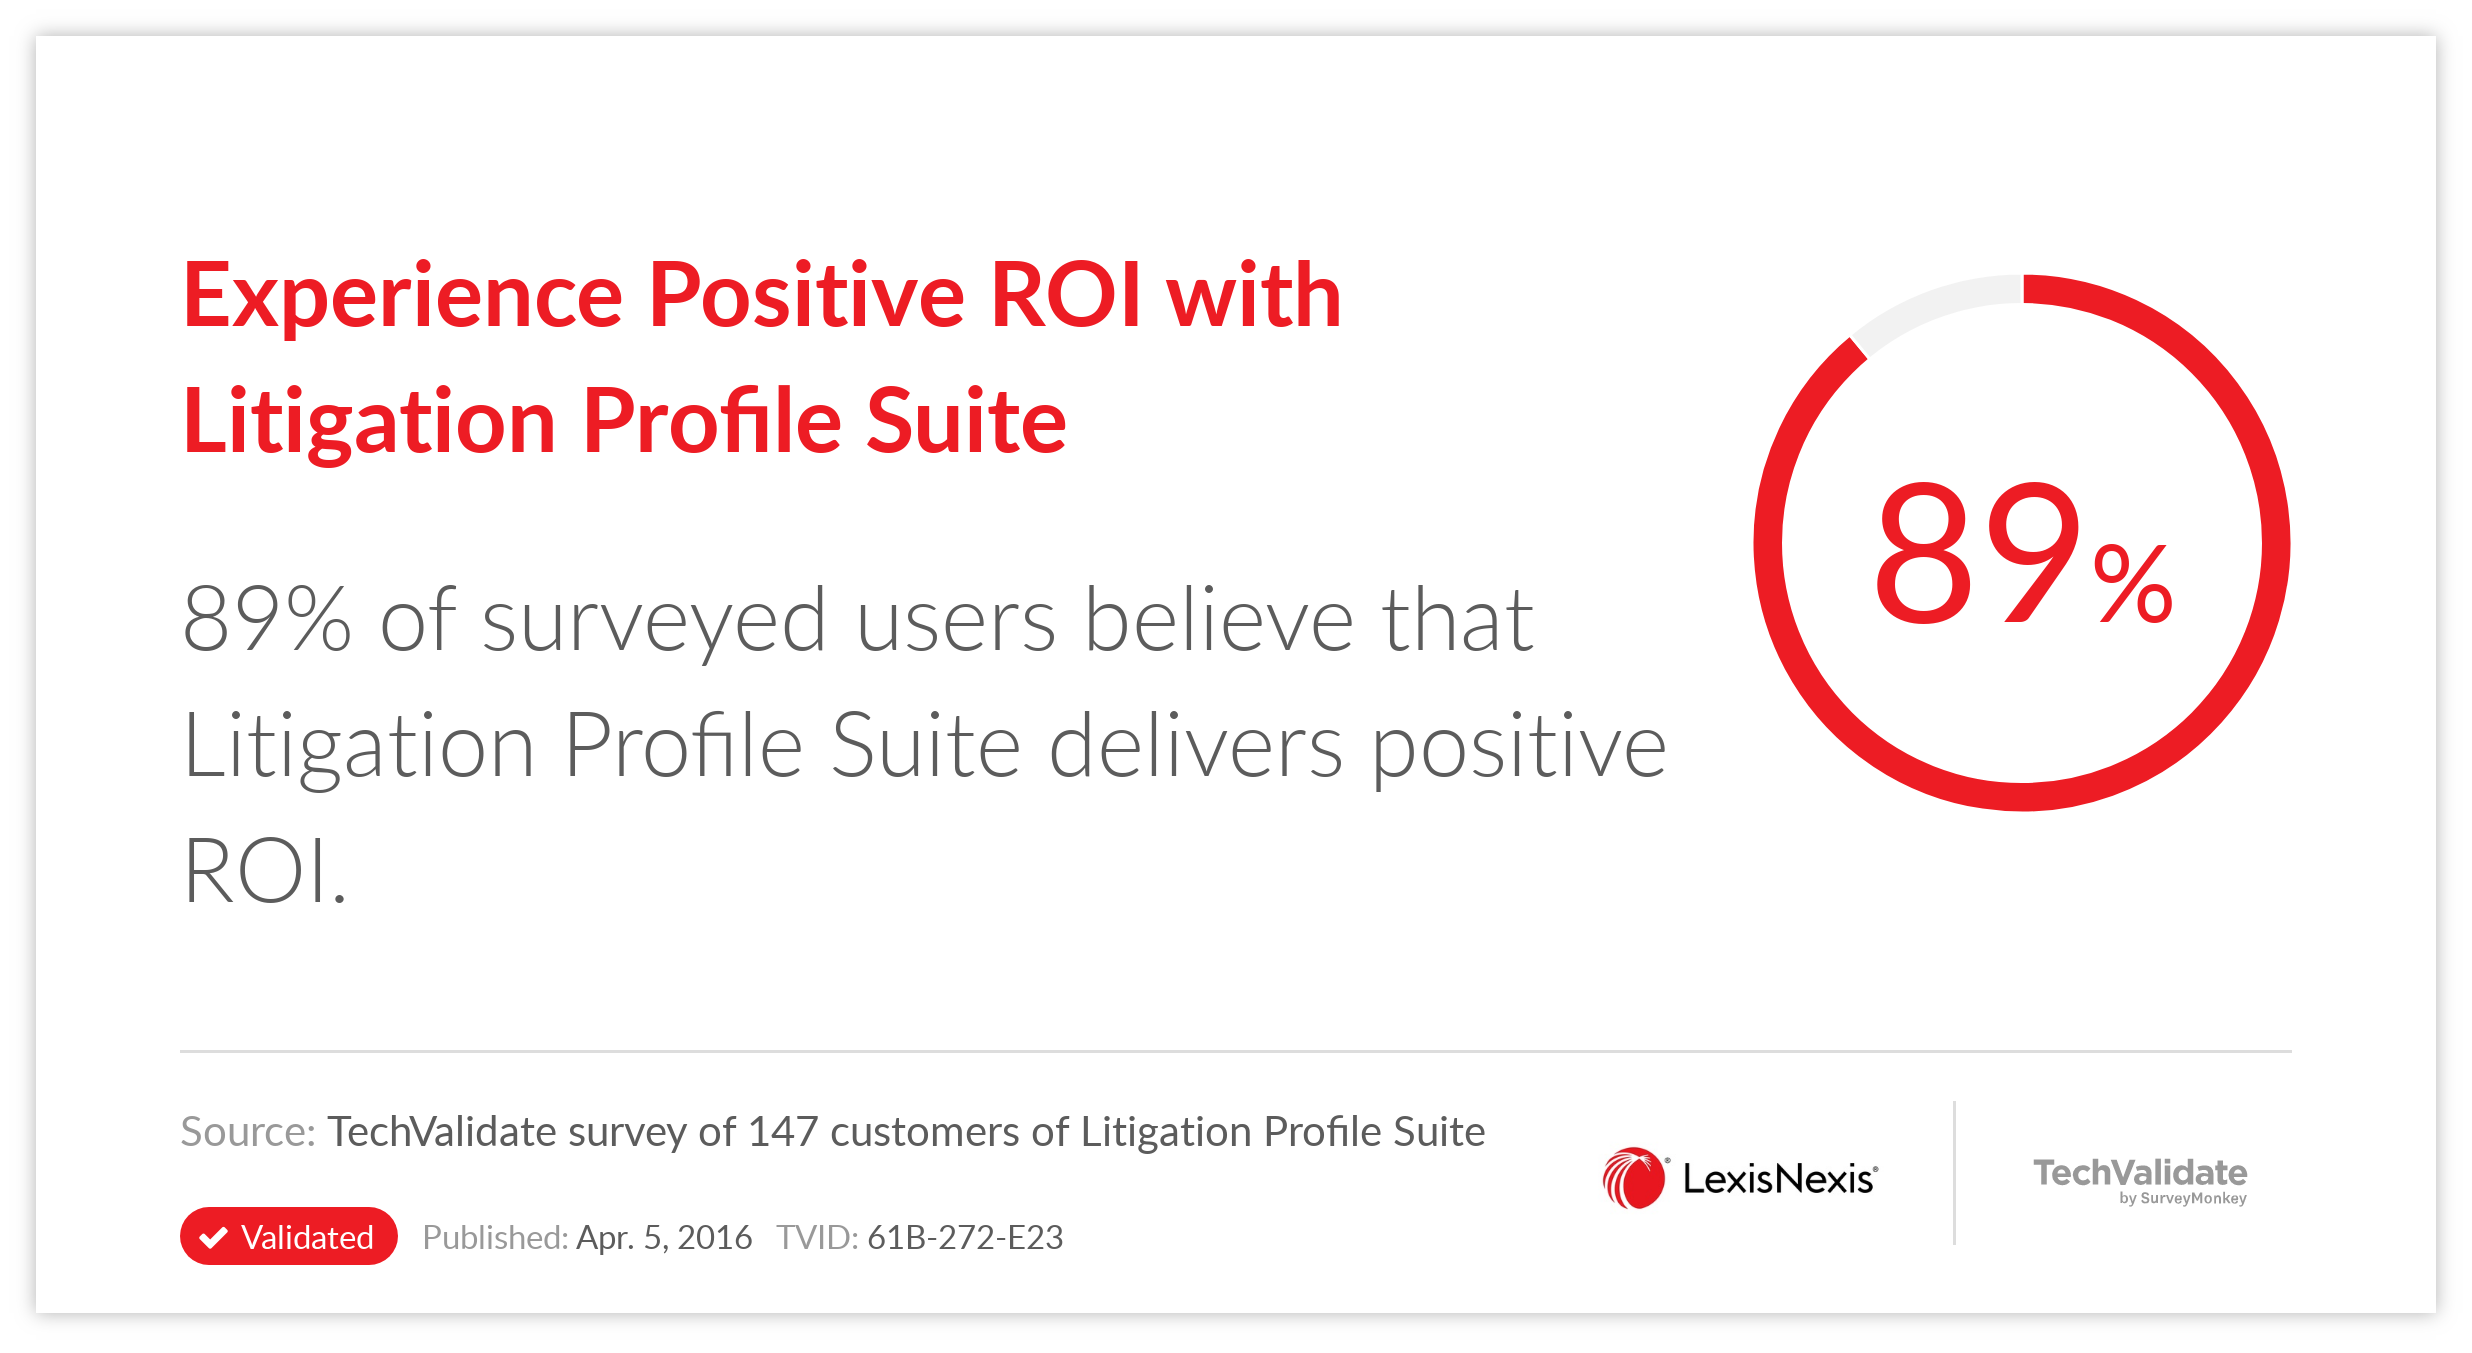 Experience Positive ROI with Litigation Profile Suite